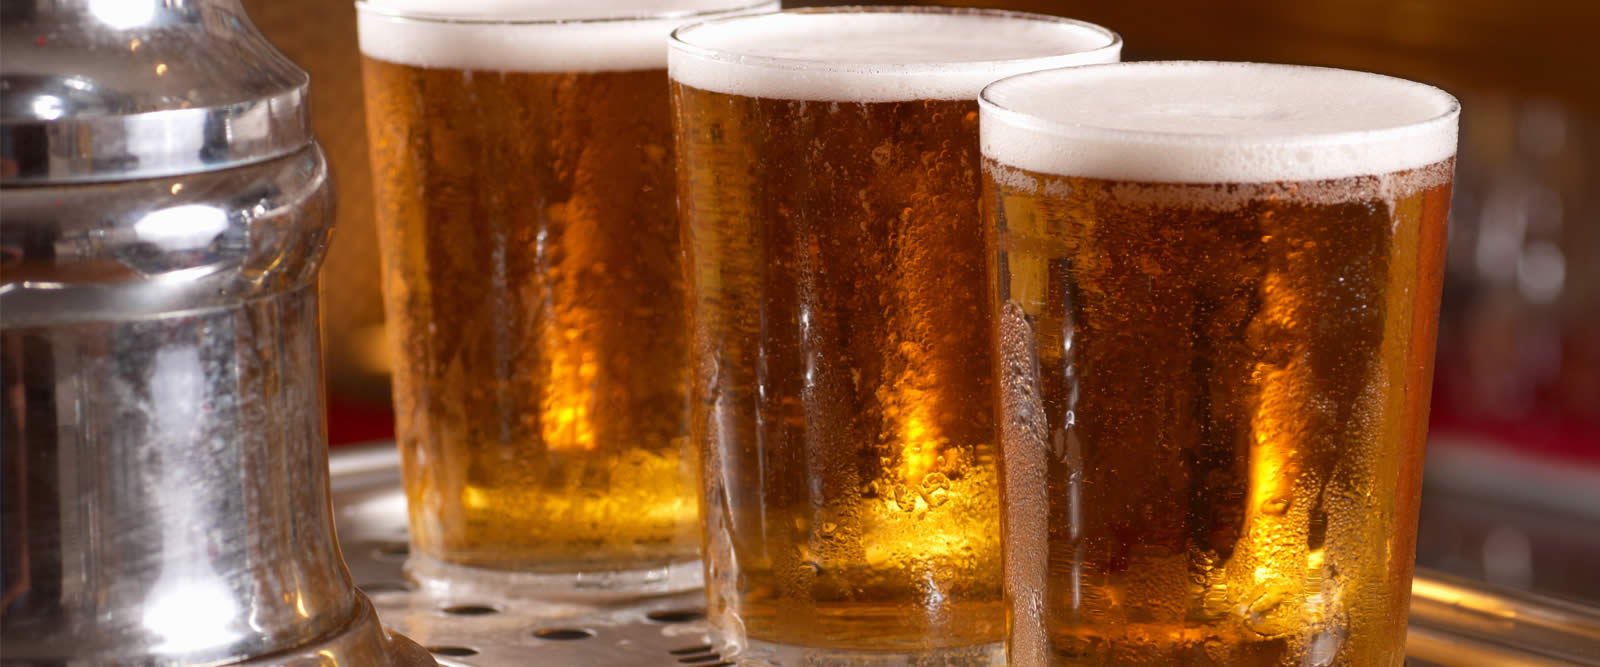 spanish-beer-and-cider-1600x667.jpg